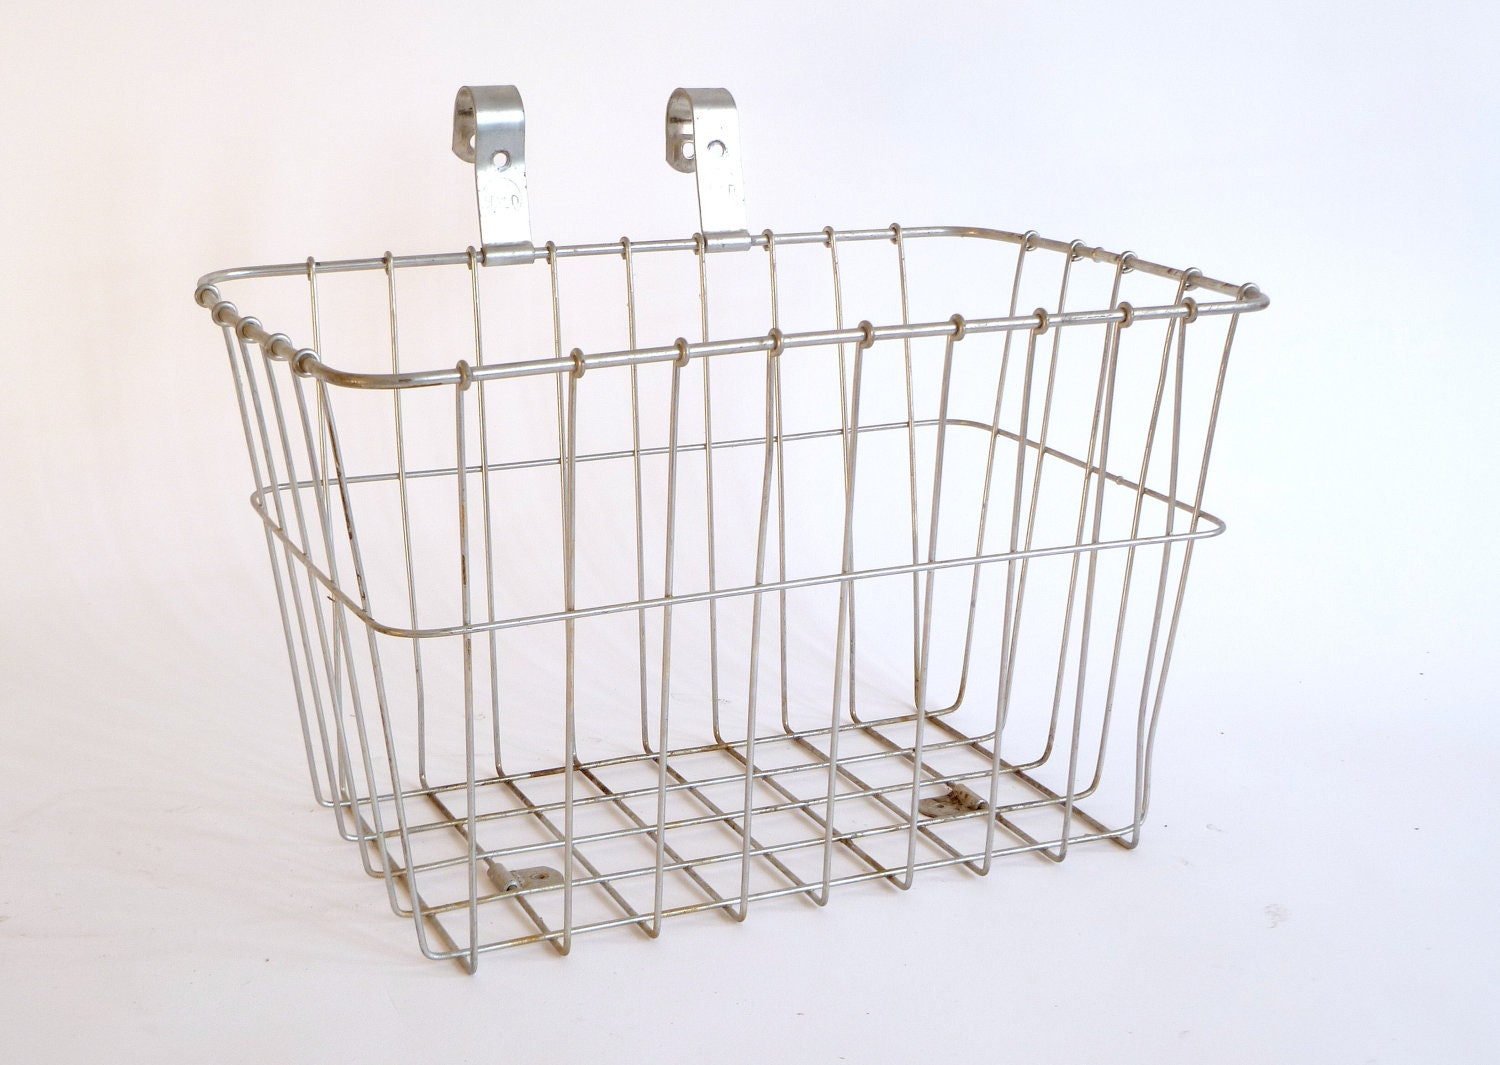 tall wire basket - image result for tall wire basket